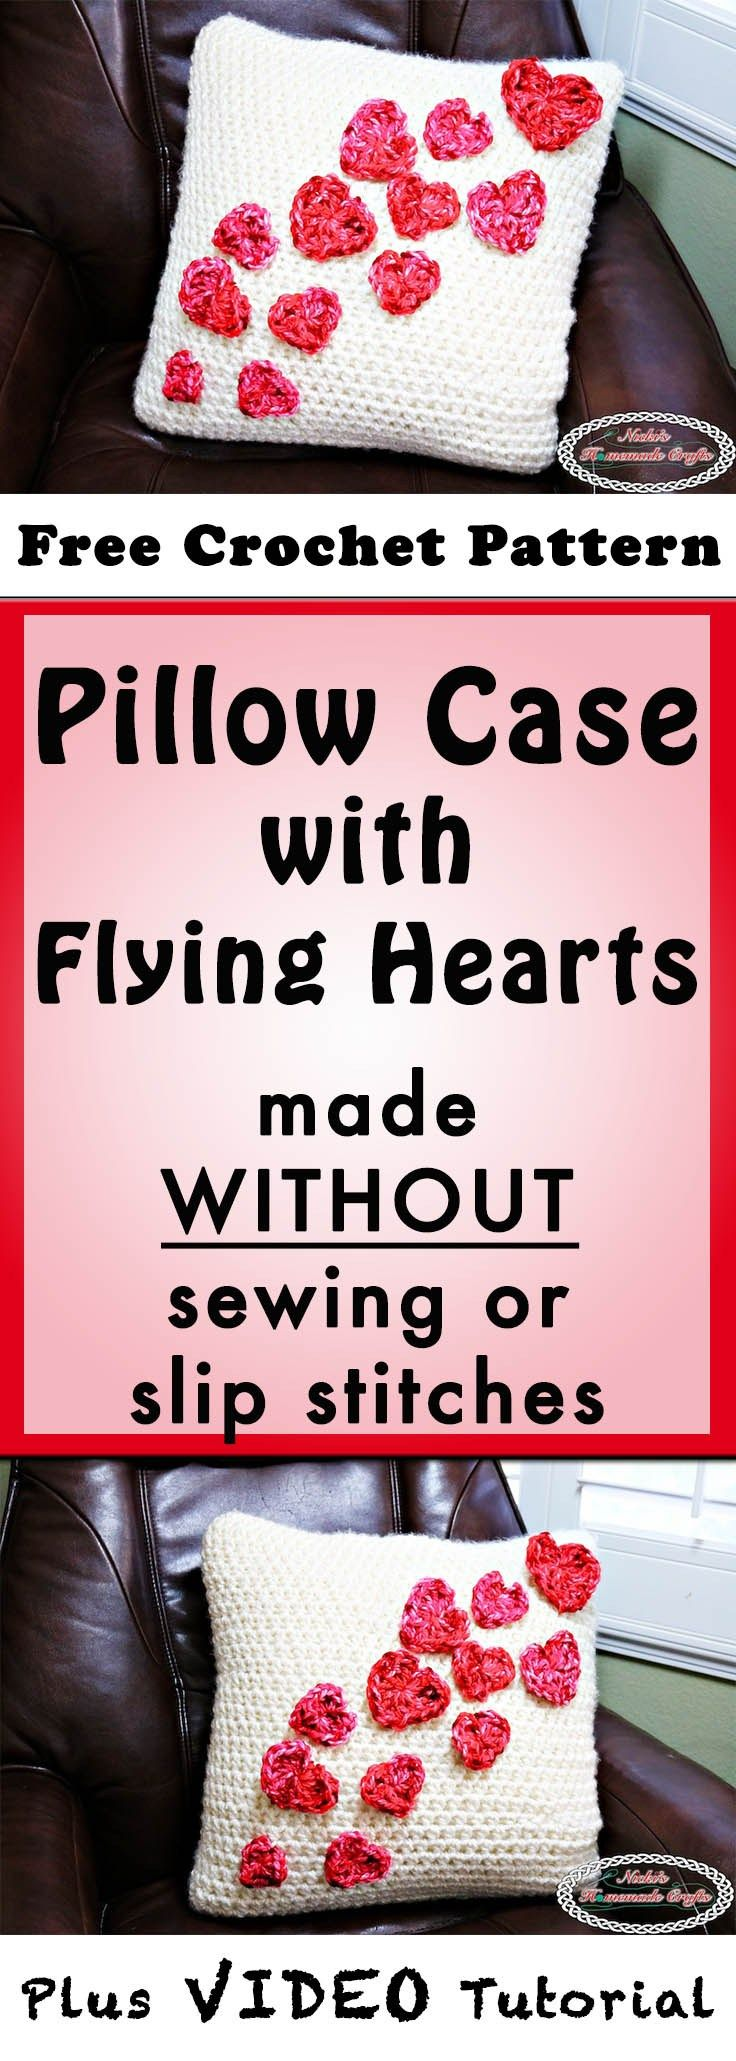 Pillow Case with Flying Hearts made without Sewing or Slip Stitches - Free Crochet Pattern by Nicki's Homemade Crafts #valentineideas #crochet #pillow #case #flying #hearts #without #sewing #slipstitches #Valentinesday #love #cozy #comfy #easy #video #tutorial